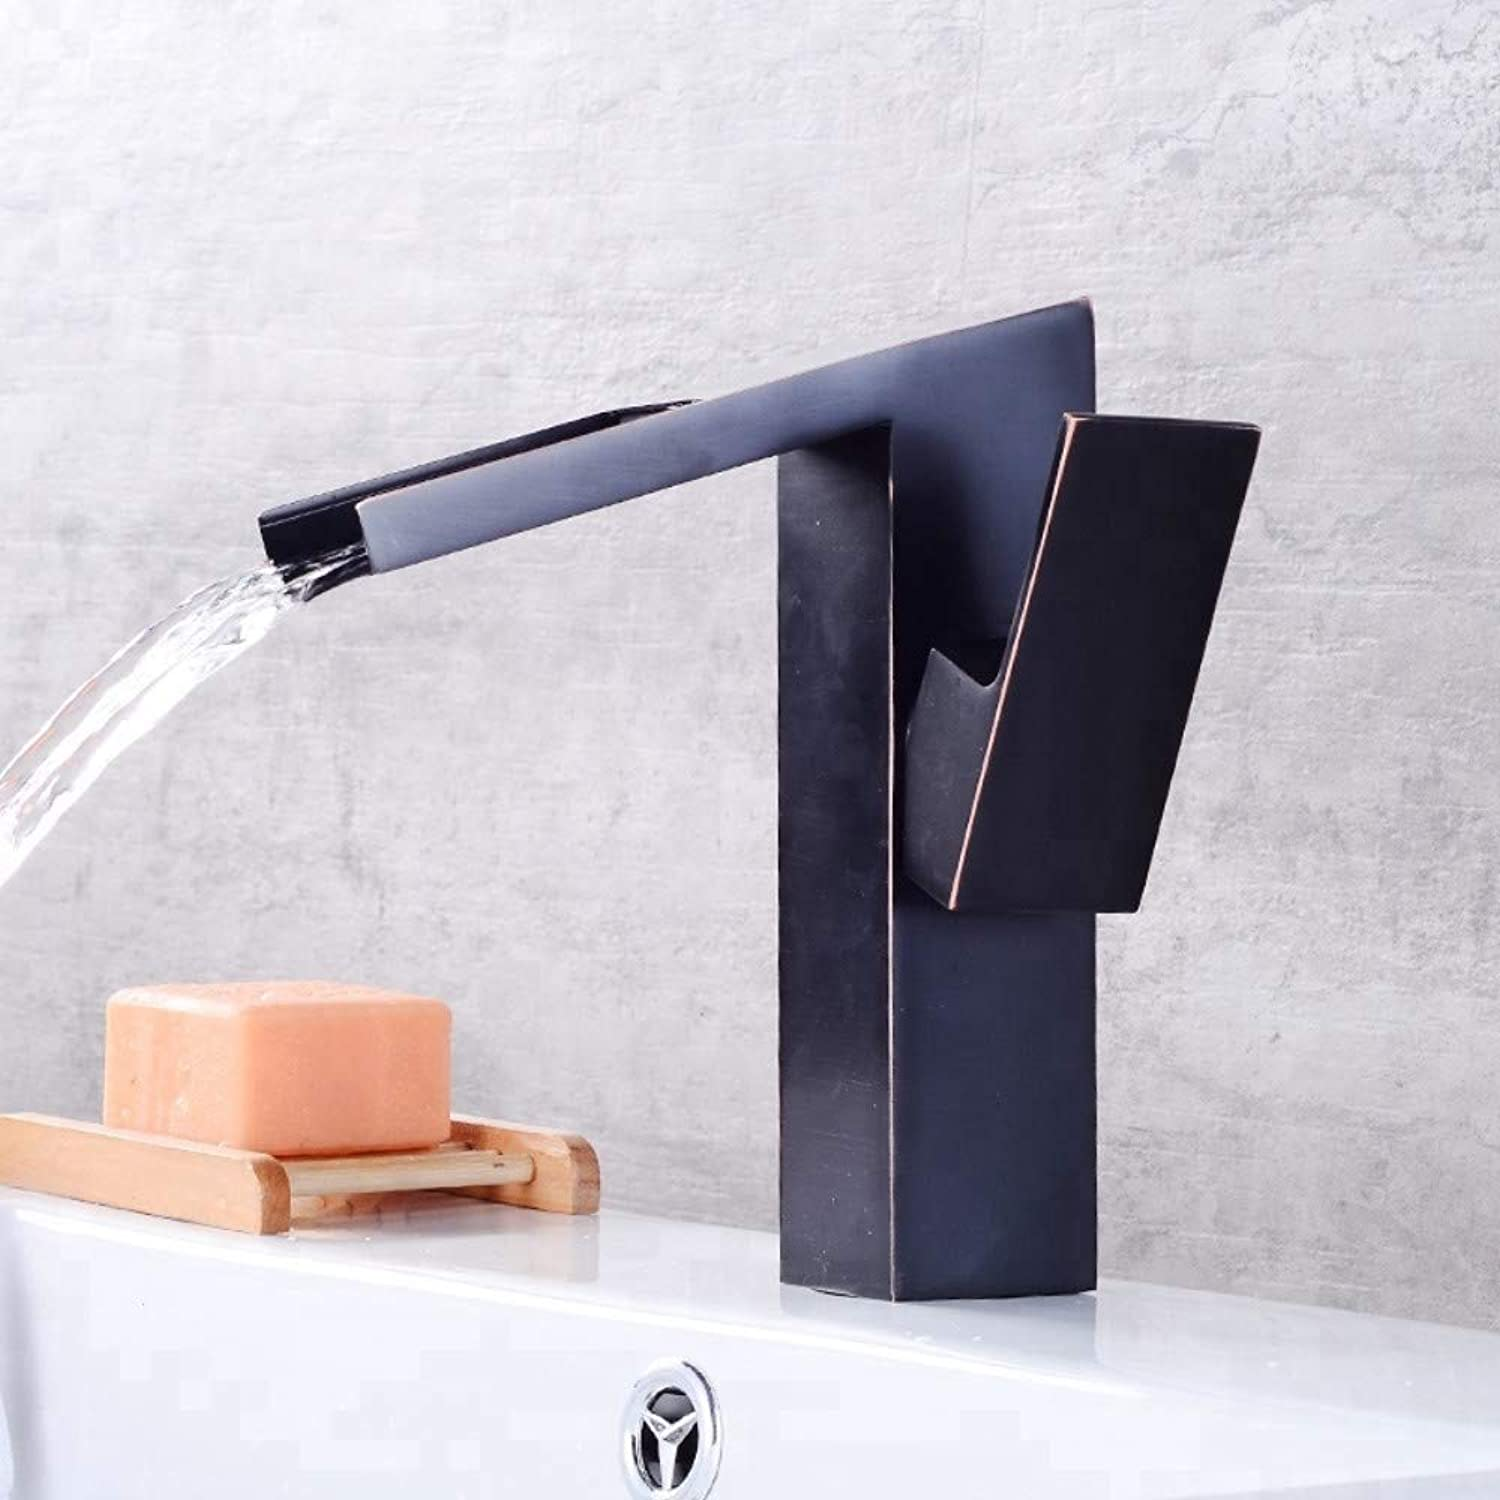 Bathroom Sink Tap Basin Sink Mixer Tap Single Handle Hot Cold Water Waterfall Faucetblack Brass Bathroom Wash Basin Faucet